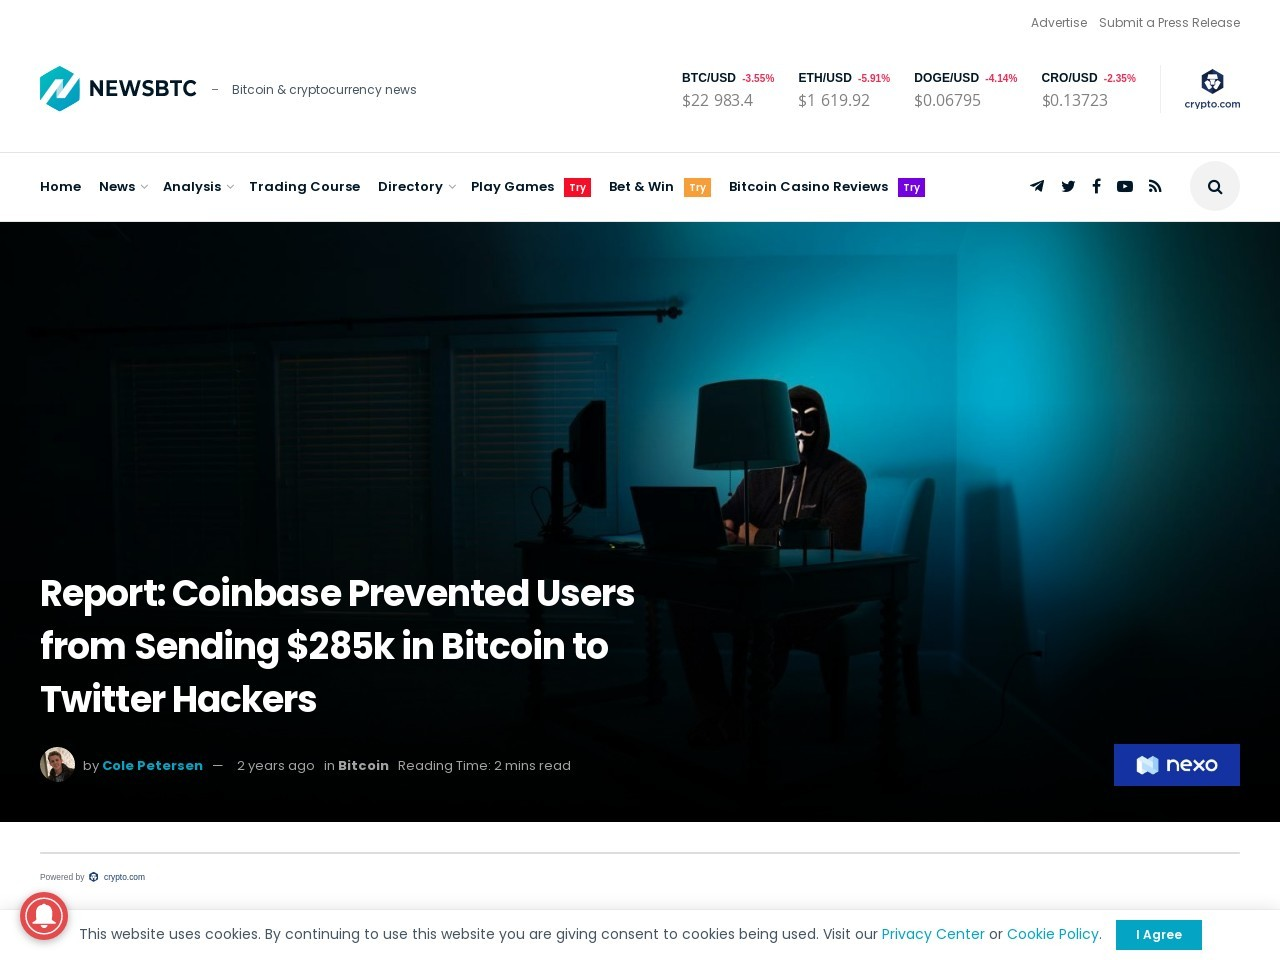 Report: Coinbase Prevented Users from Sending $285k in Bitcoin to Twitter Hackers